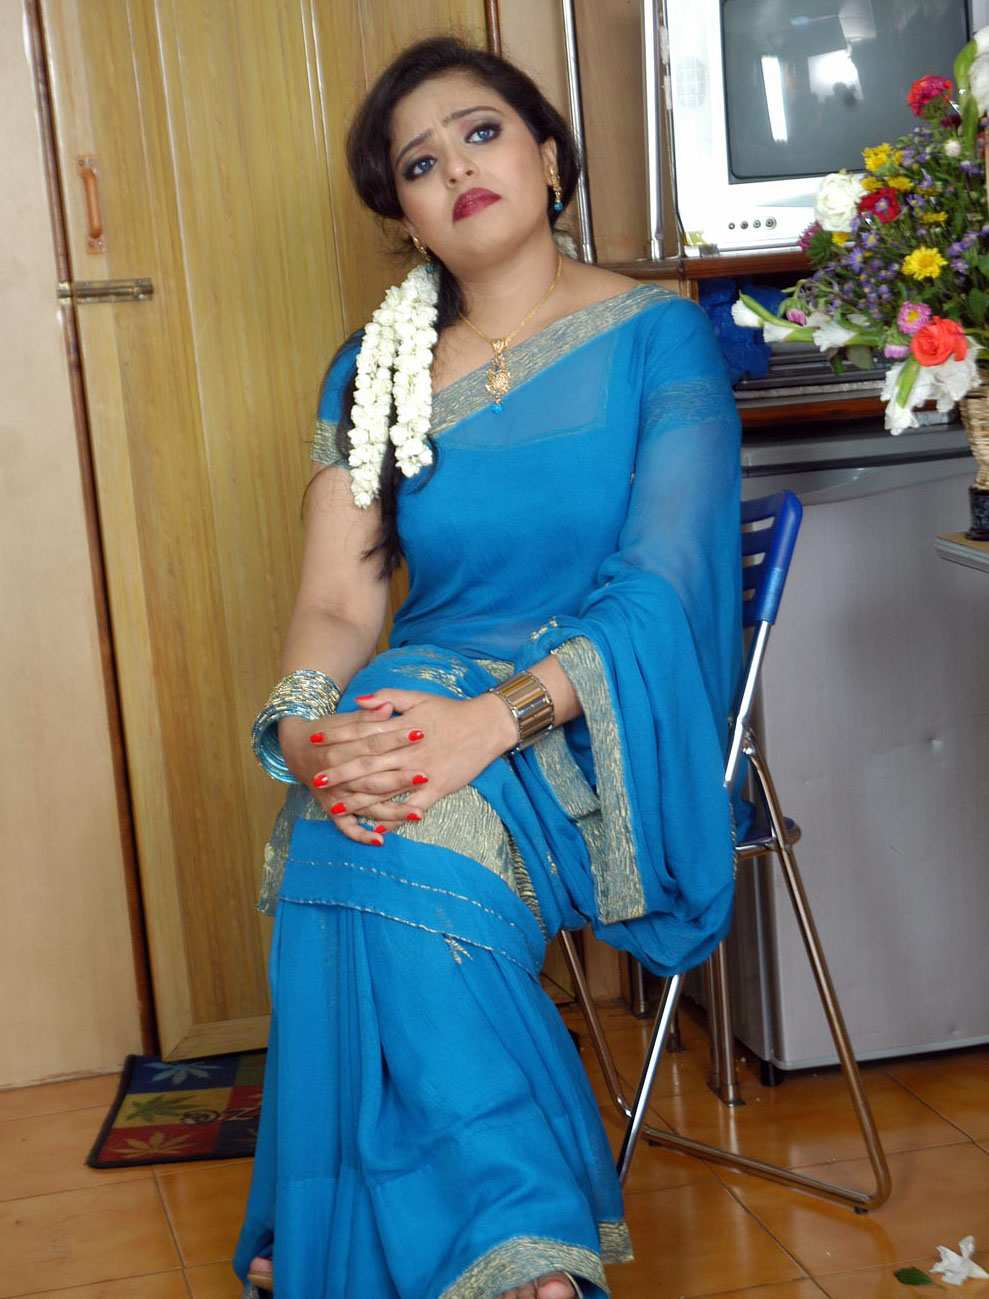 Special For All: Hot Tamil Actress Mumtaz In Blue Saree Photos